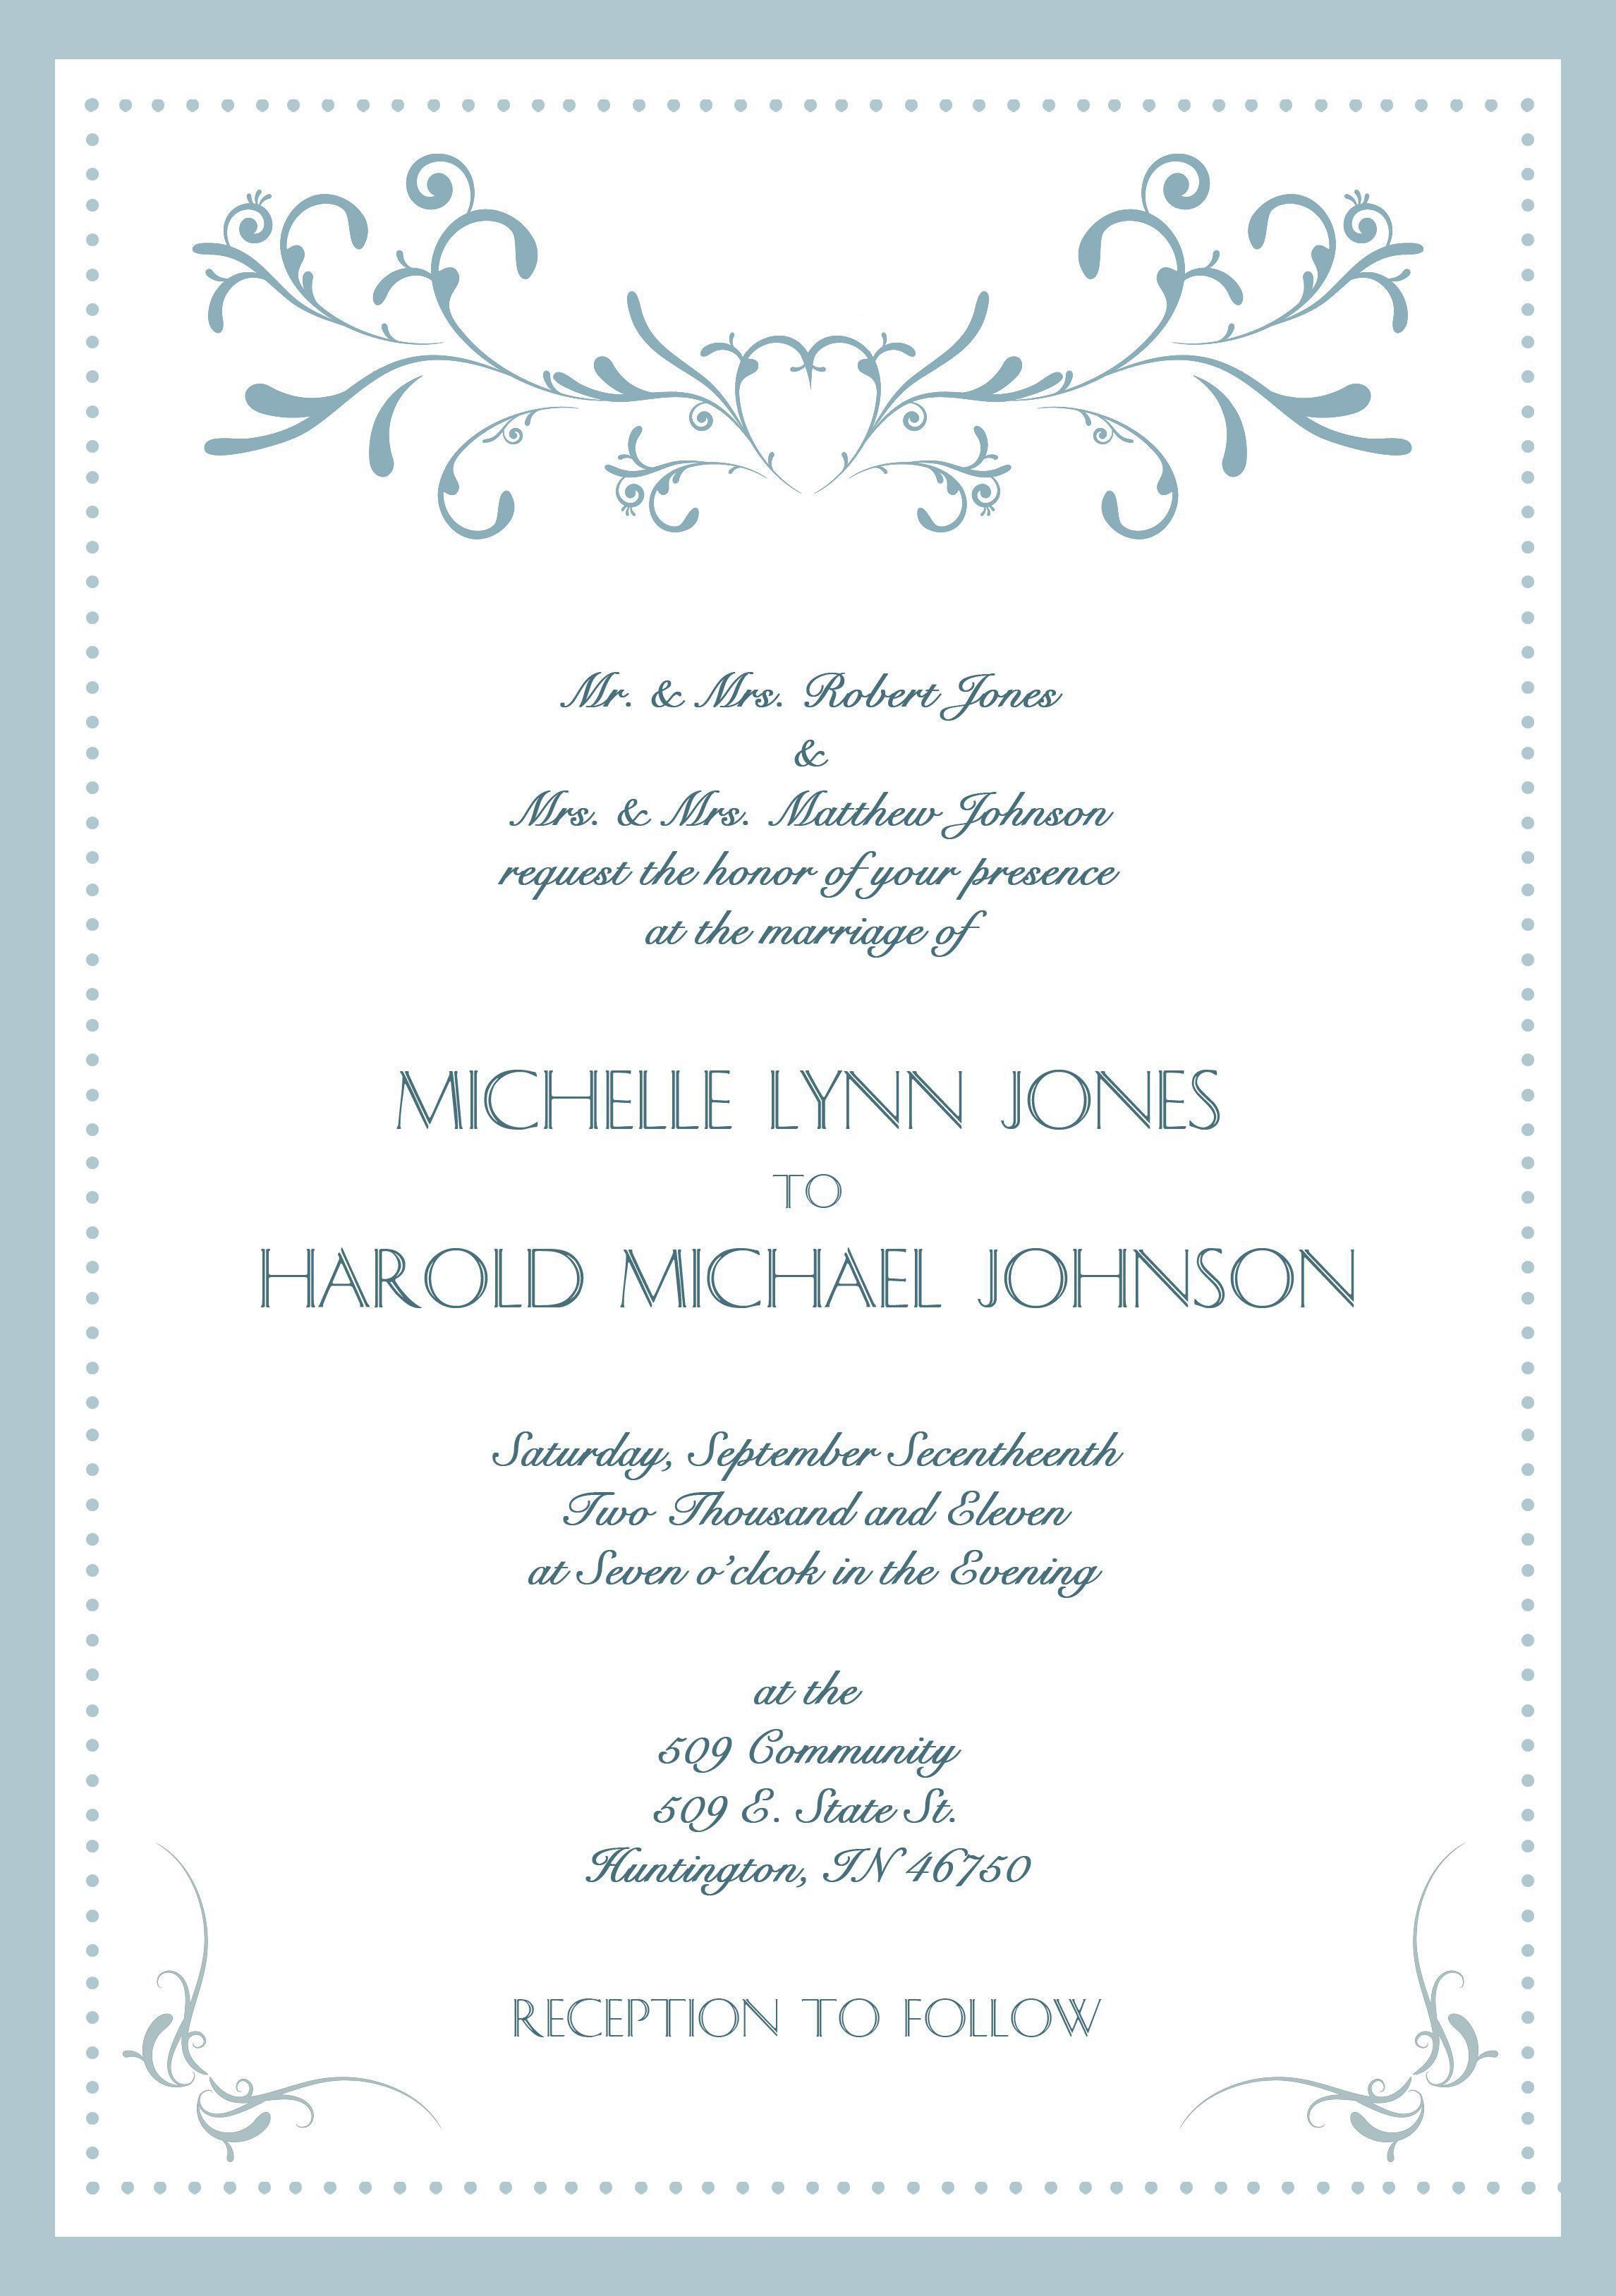 004 Exceptional Formal Wedding Invitation Wording Template High Definition  TemplatesFull